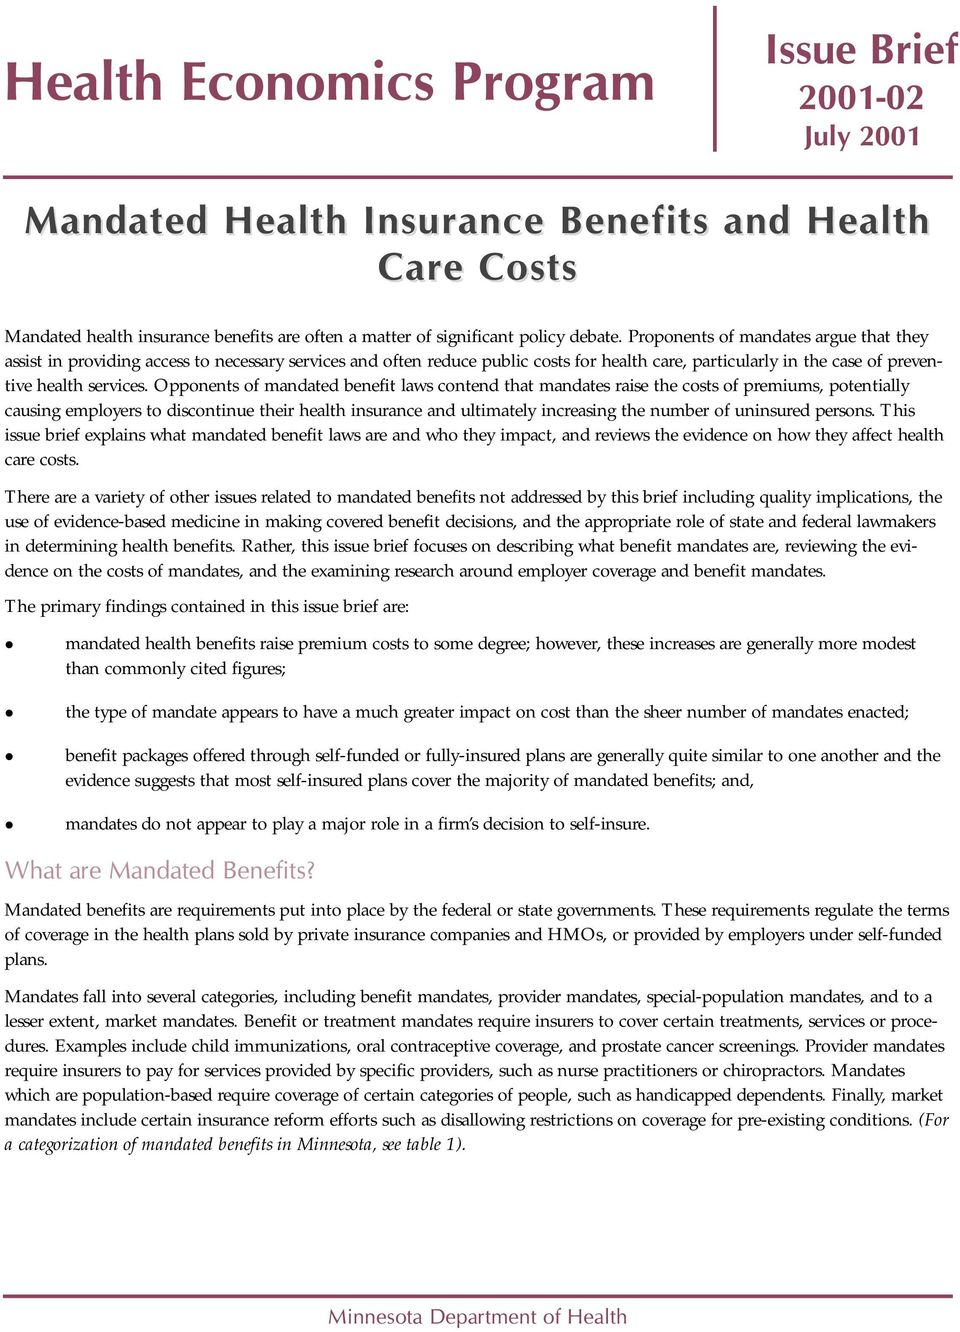 Opponents of mandated benefit aws contend that mandates raise the costs of premiums, potentiay causing empoyers to discontinue their heath insurance and utimatey increasing the number of uninsured